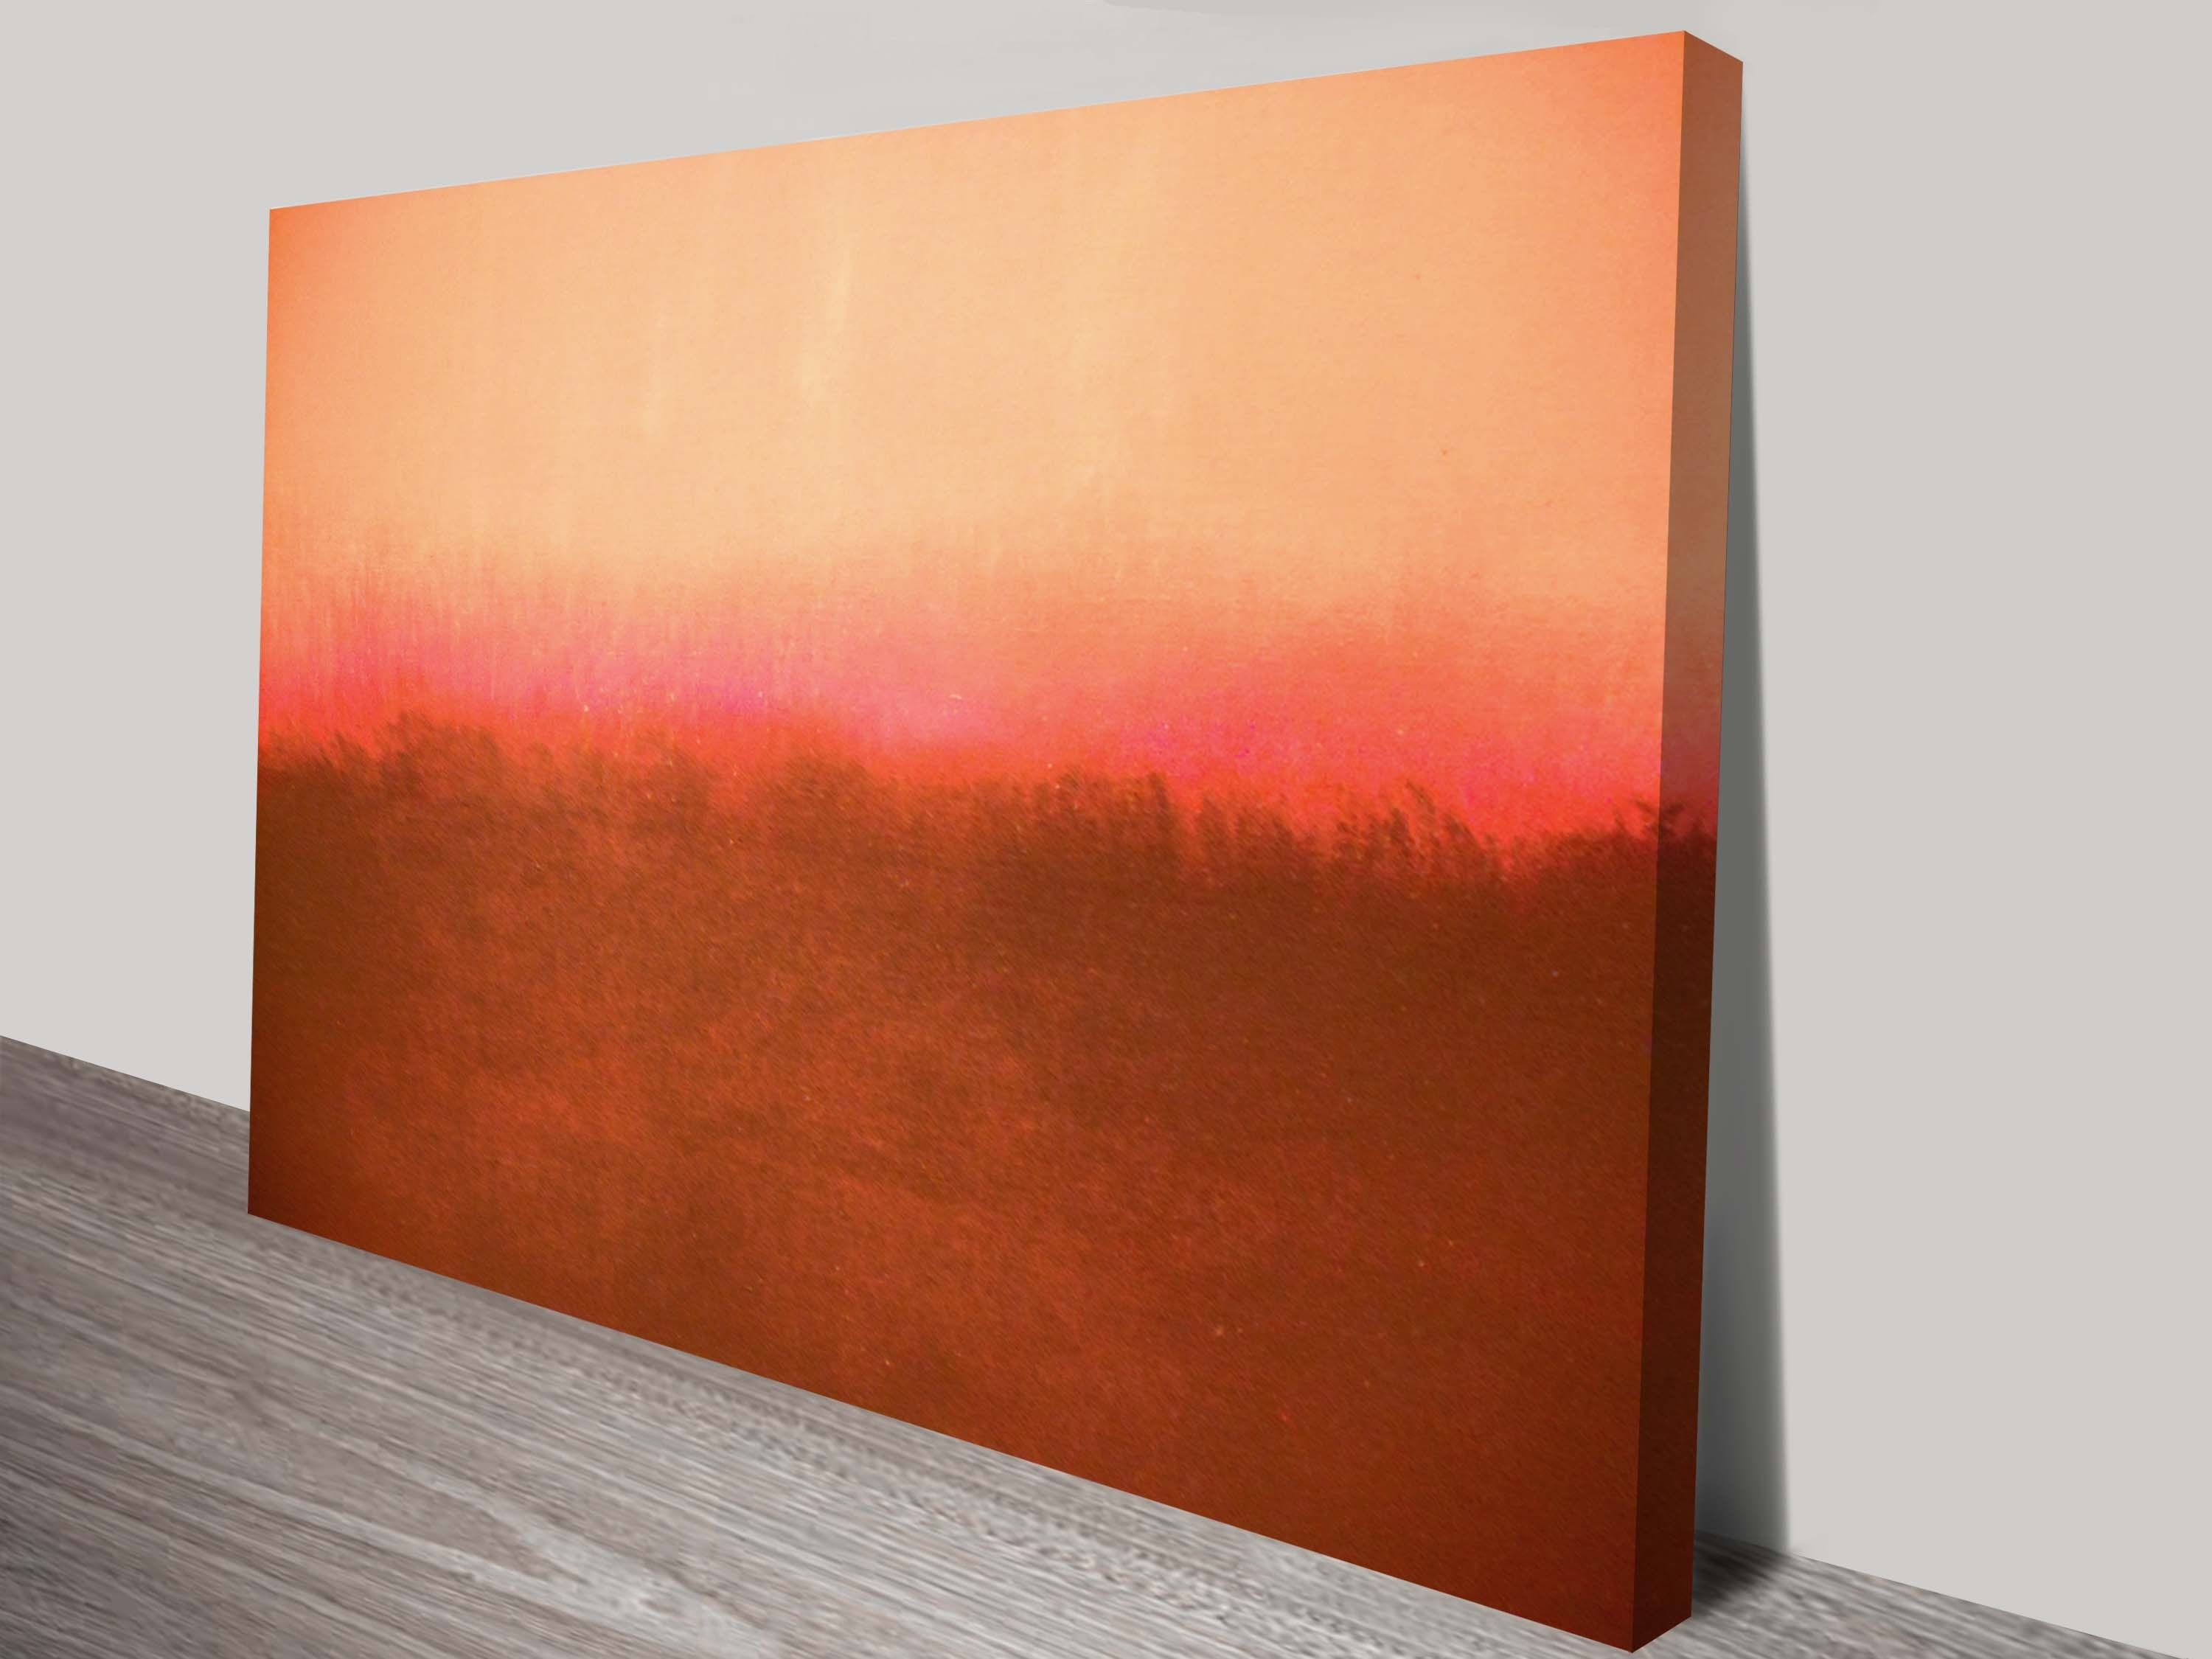 Mark Rothko Painting Print On Canvas Regarding Best And Newest Abstract Wall Art Prints (View 14 of 21)